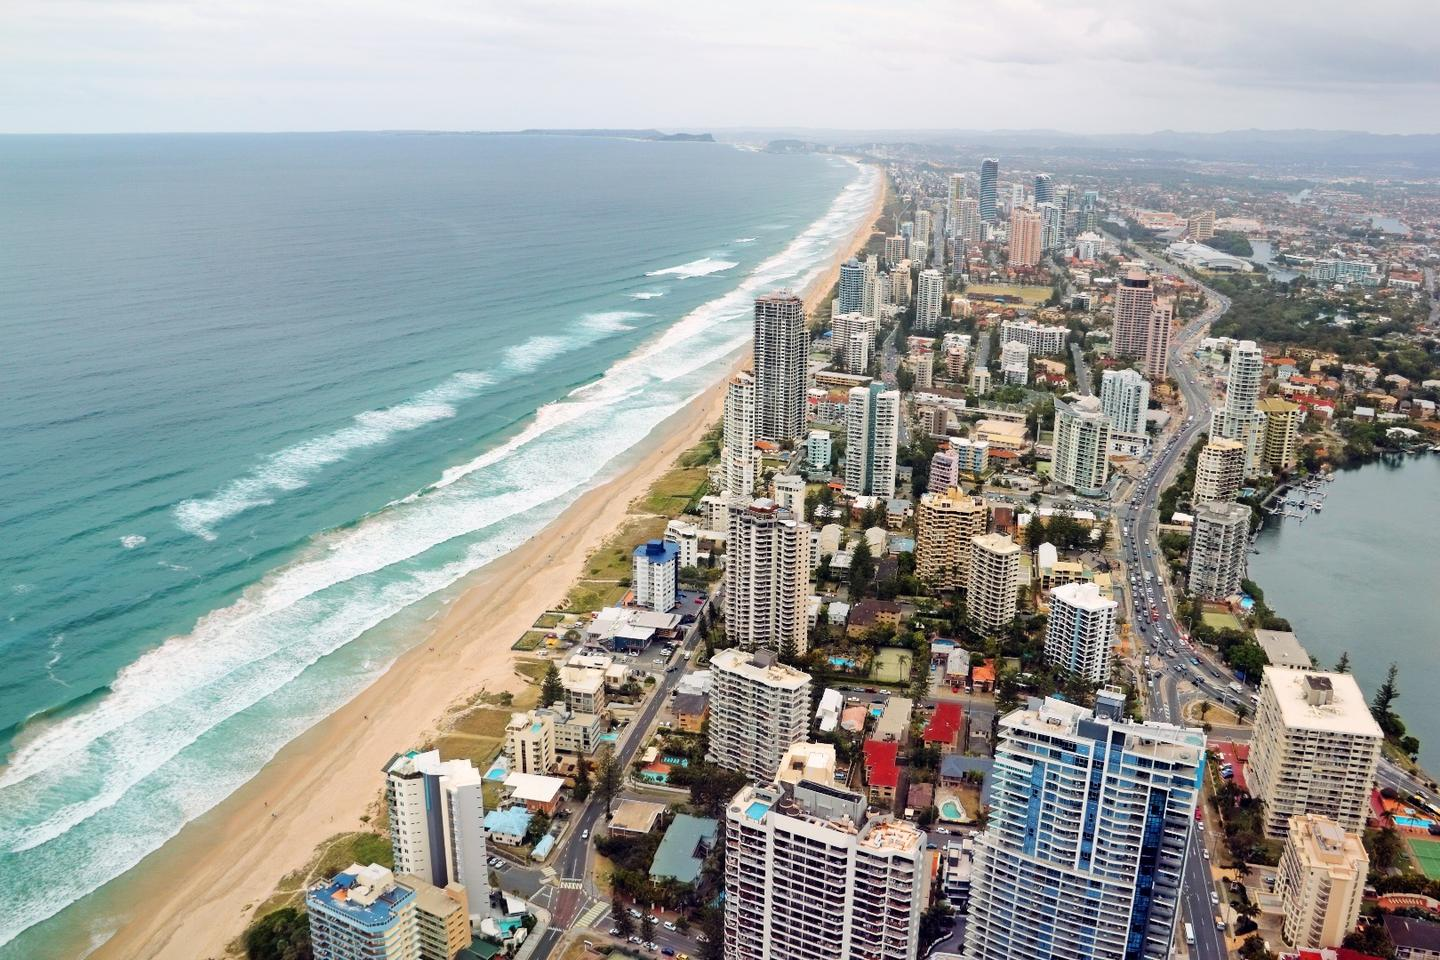 Australia's Electric Super Highway will connect the Queensland city of the Gold Coast to the state's far north